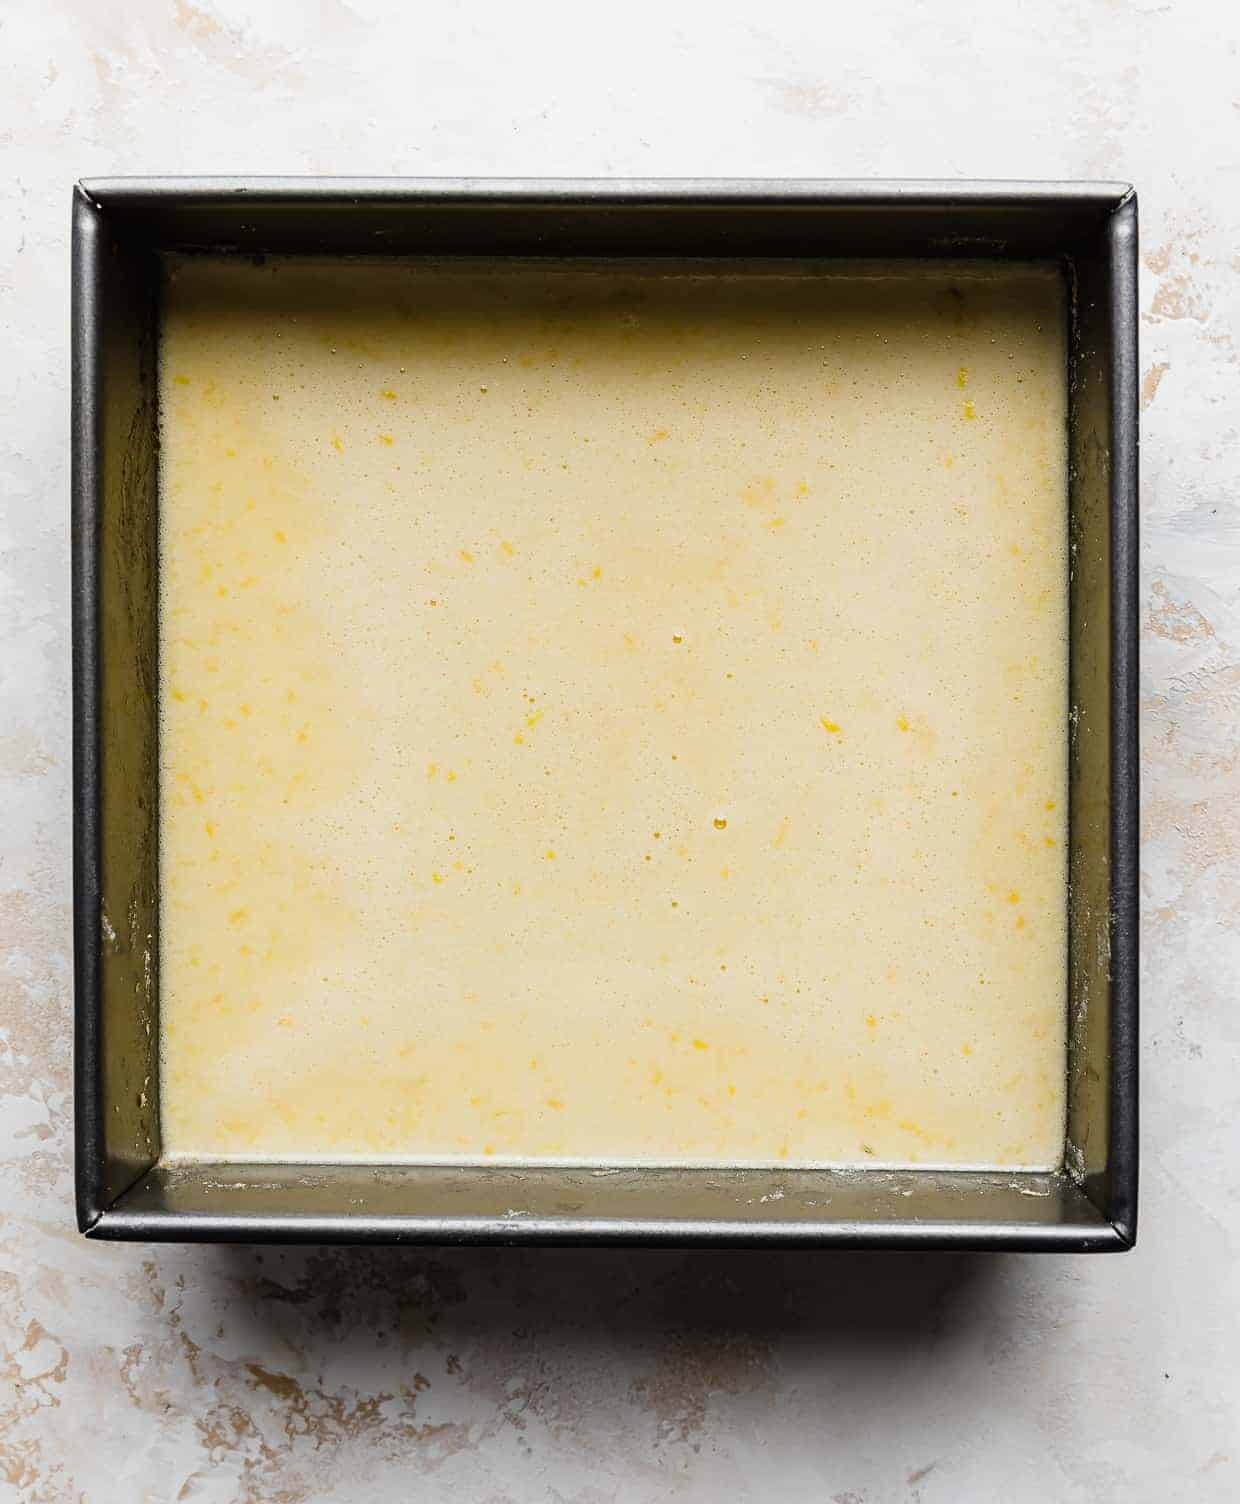 A square pan with unbaked yellow lemon bar filling in the pan.